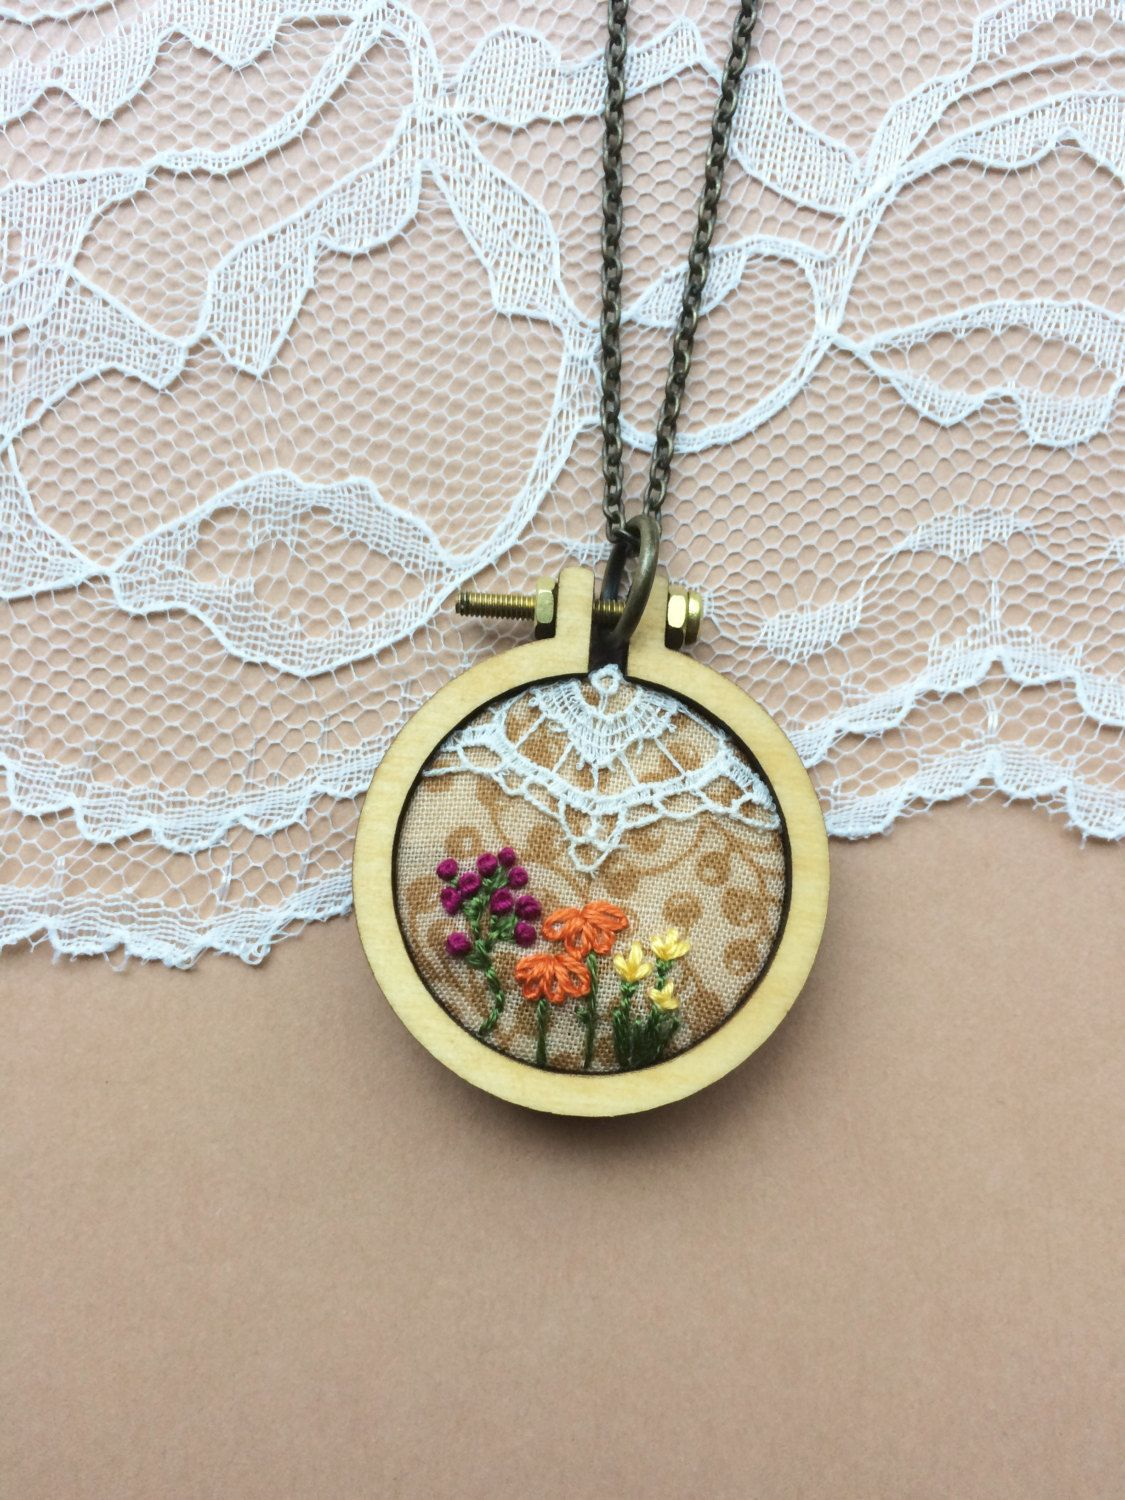 Hand embroidered mini embroidery hoop necklace with